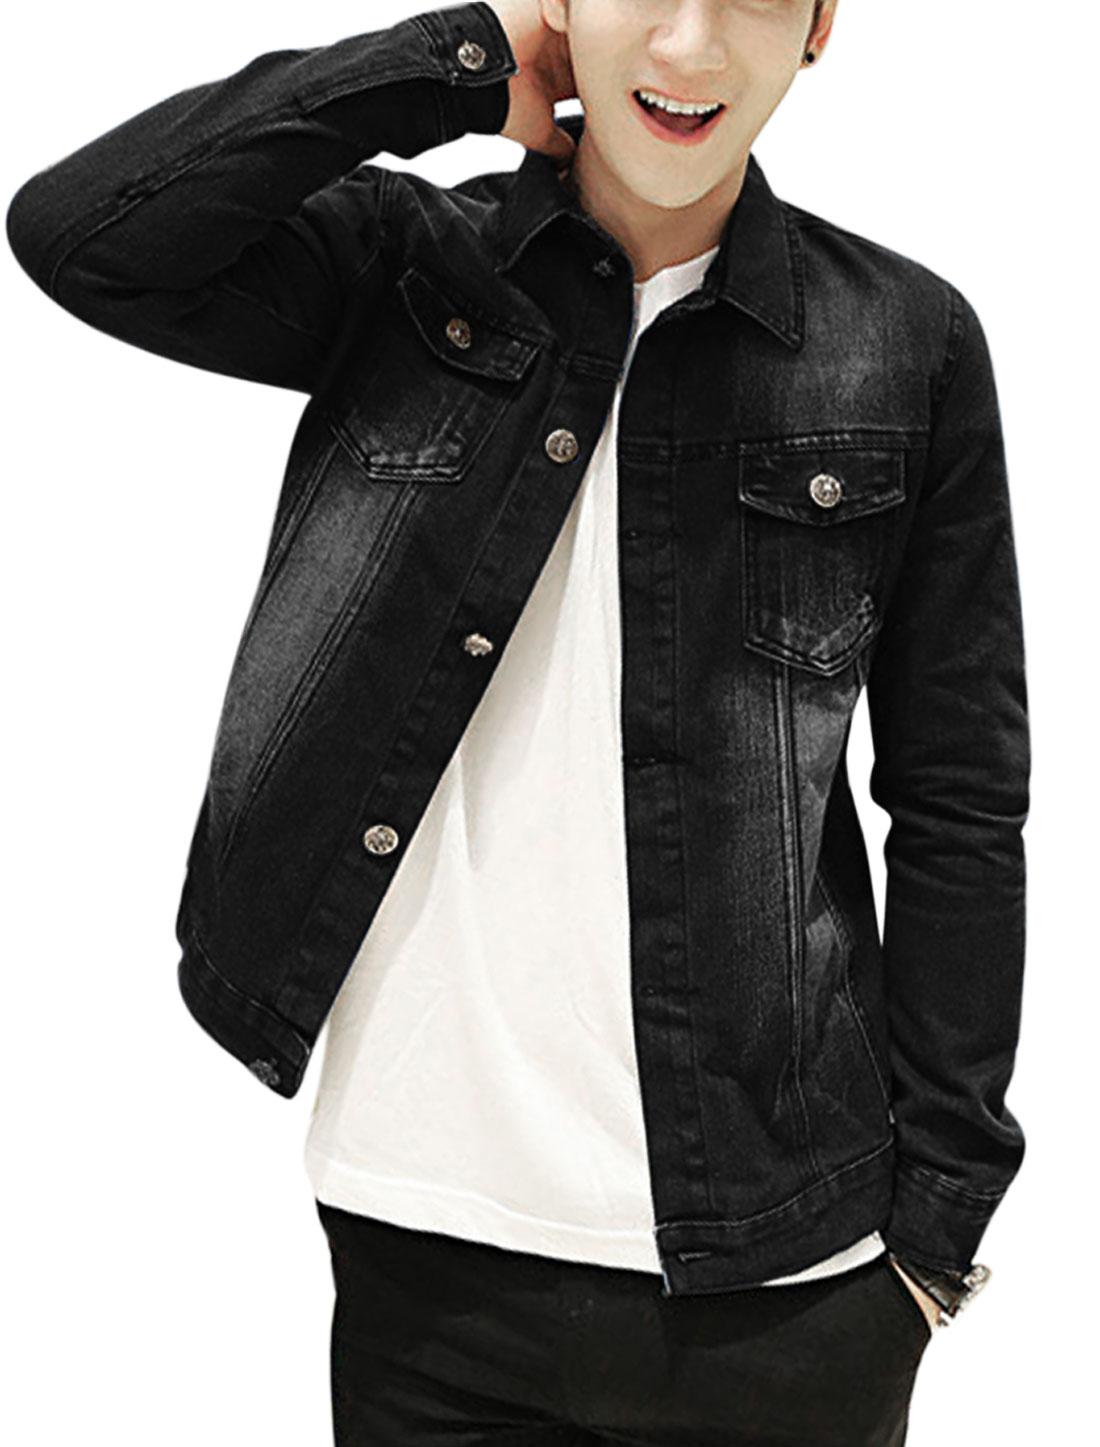 Men Signle Breasted Two Patch Chest Pockets Casual Jean Jacket Black S